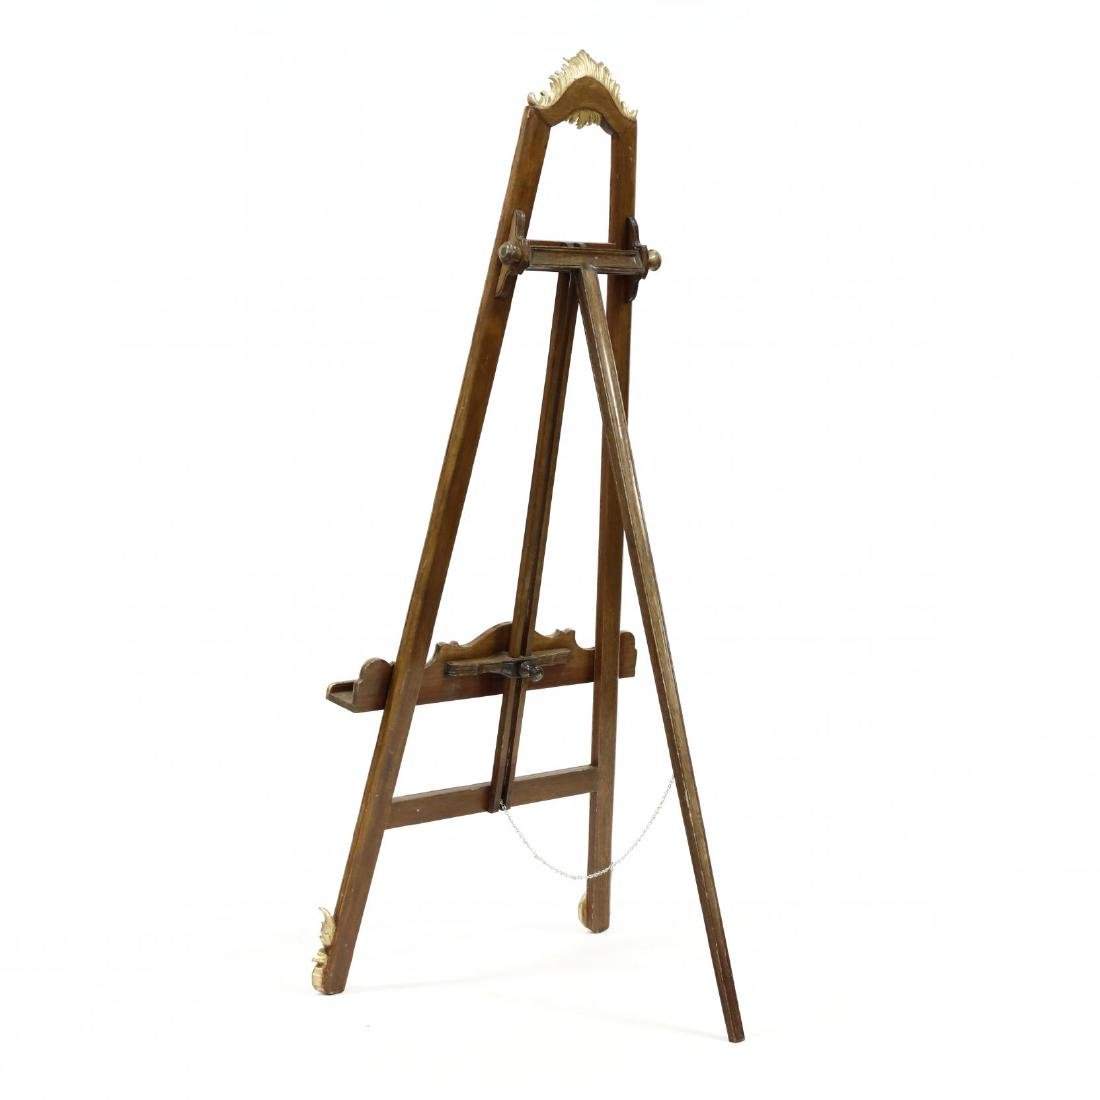 French Rococo Style Carved and Gilt Easel - 4